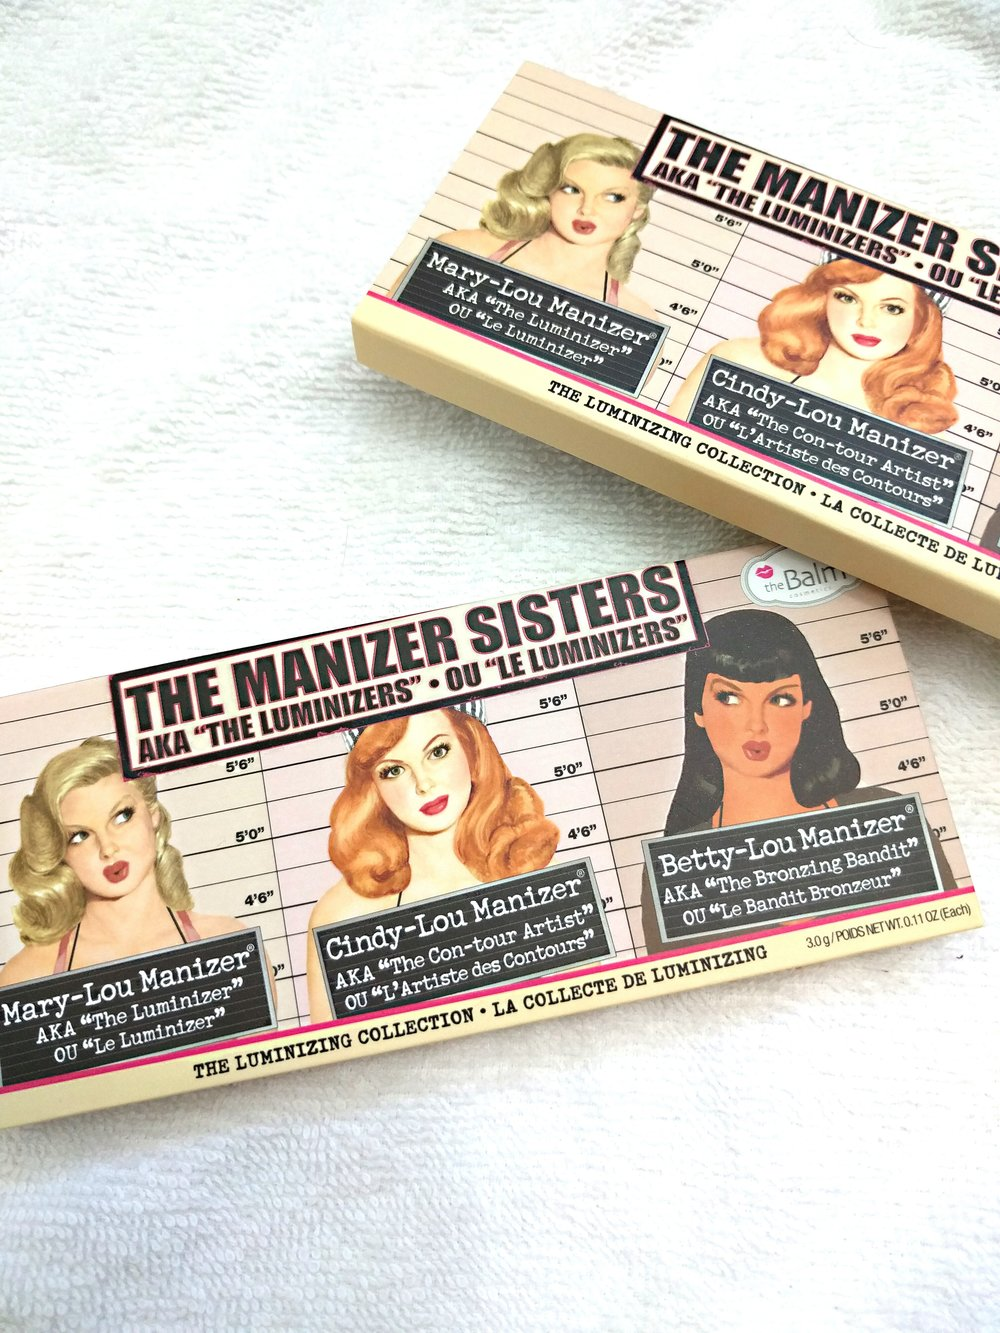 The Manizer sisters packaging image